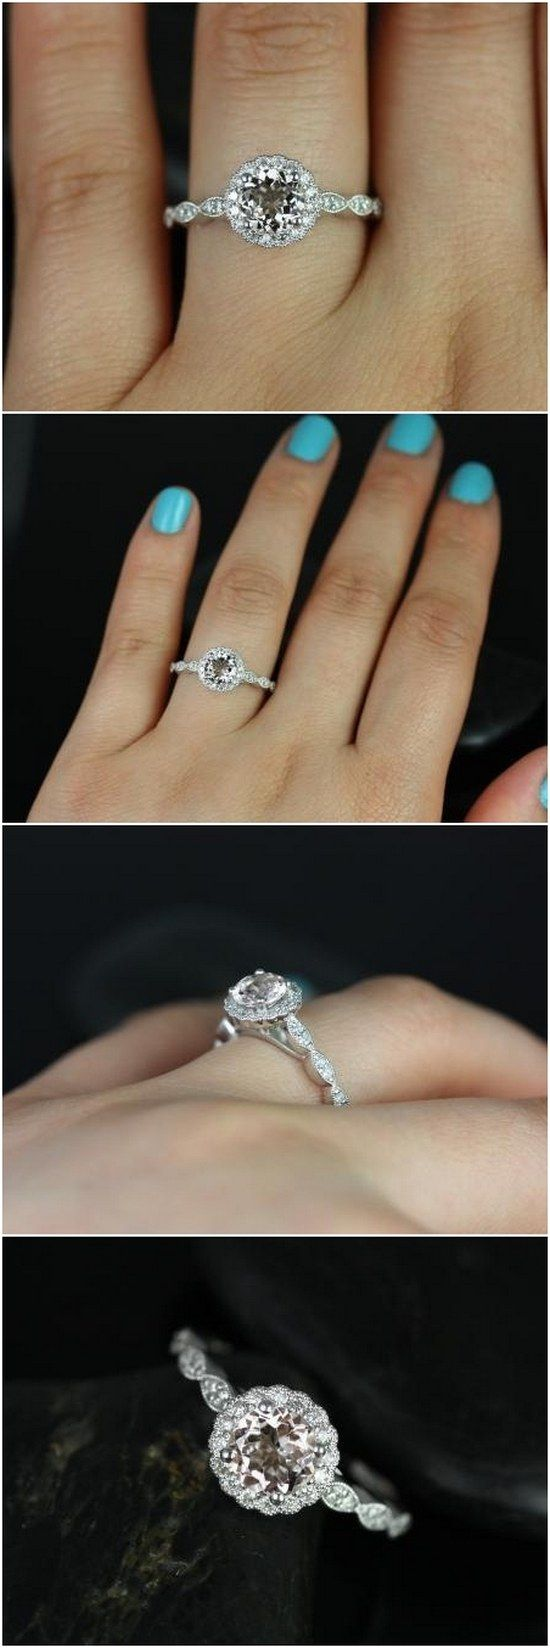 Sunny 6mm 14kt White Gold Round Morganite and Diamonds Flower Halo WITH Milgrain Engagement Ring / http://www.deerpearlflowers.com/inexpensive-engagement-rings-under-1000/